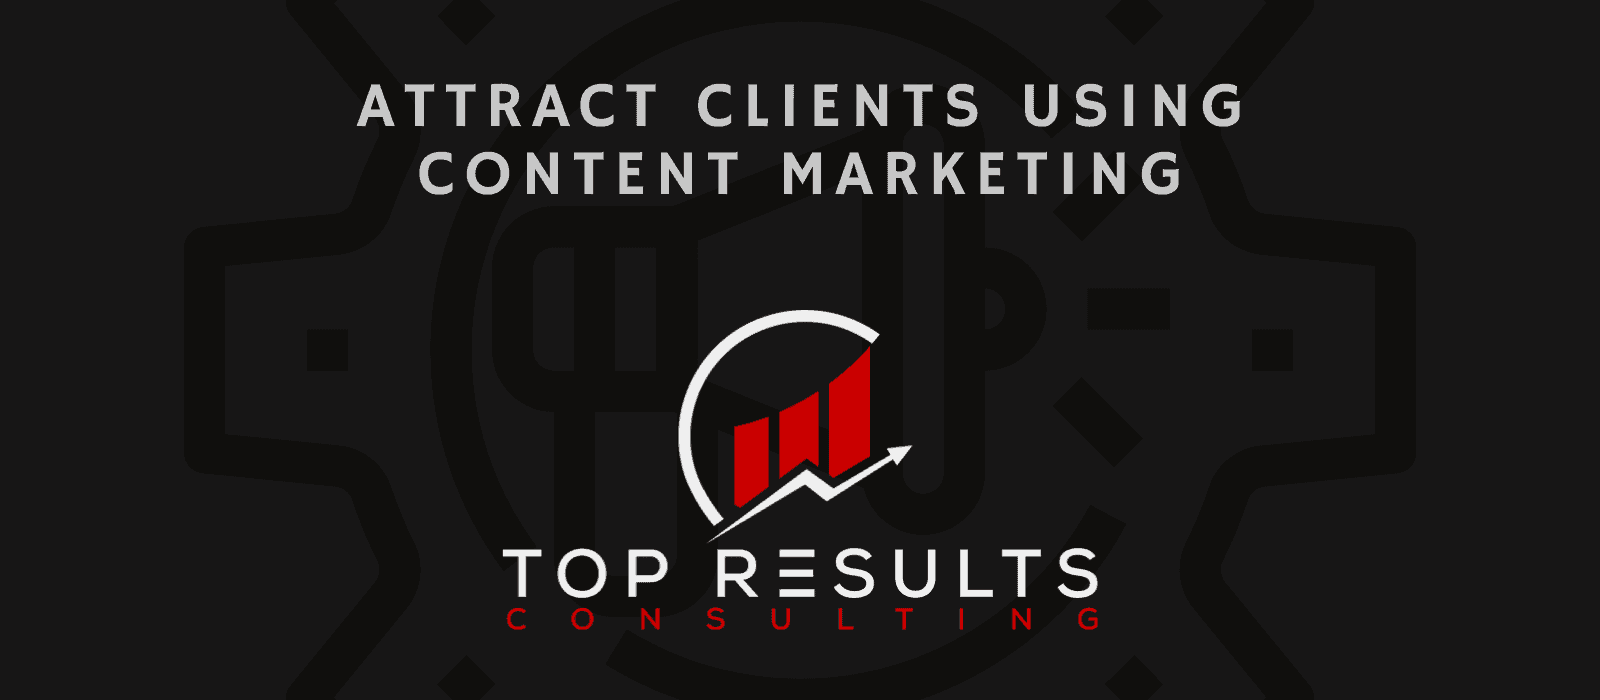 Attract Customers With Content Marketing